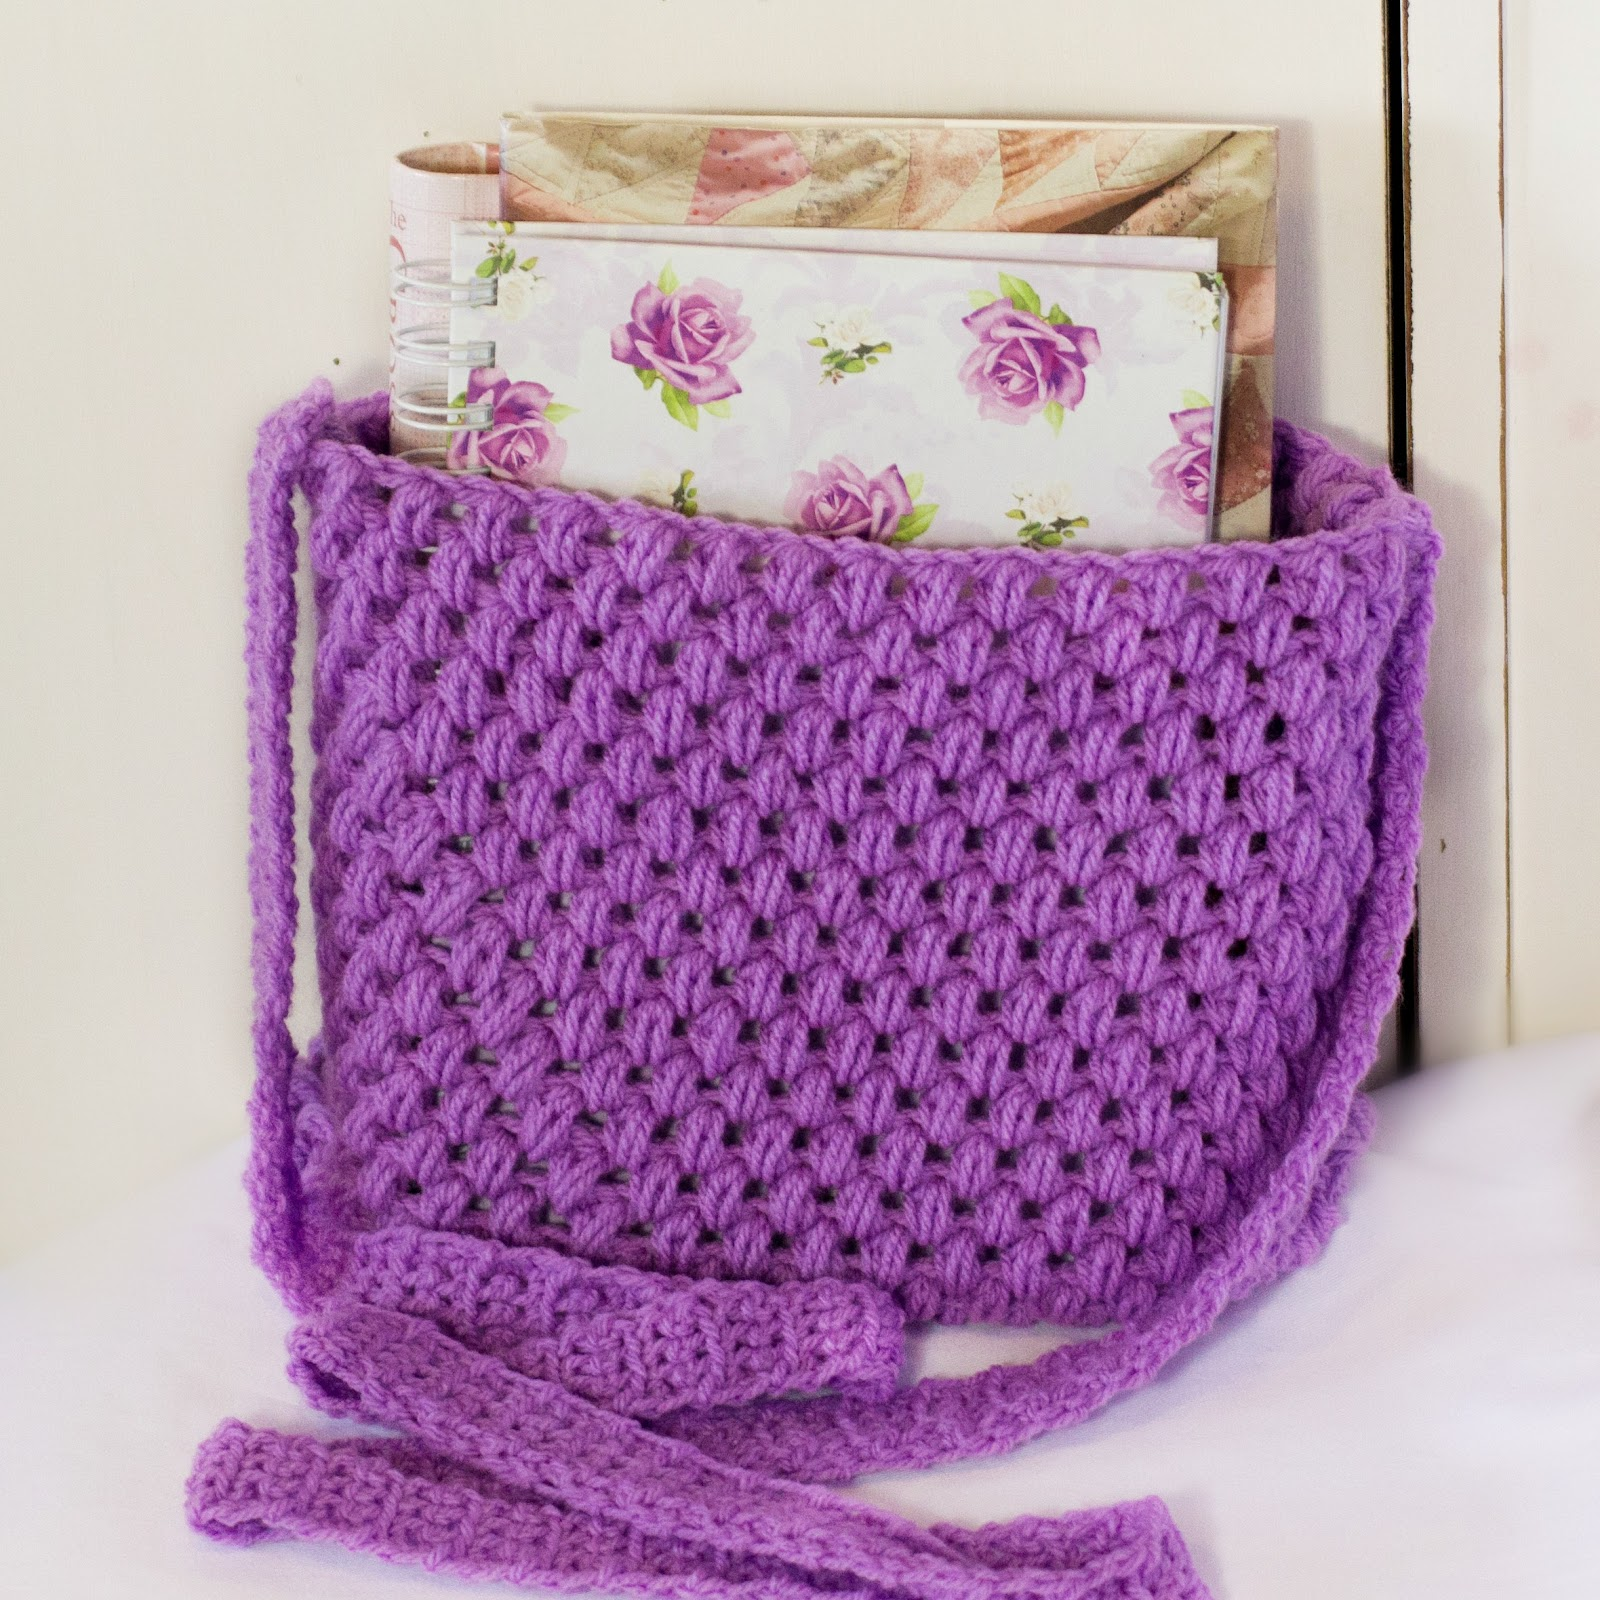 How To Crochet A Purse : ... Craft, Crochet, Create: Out and About ~ Easy Tote Bag Crochet Pattern